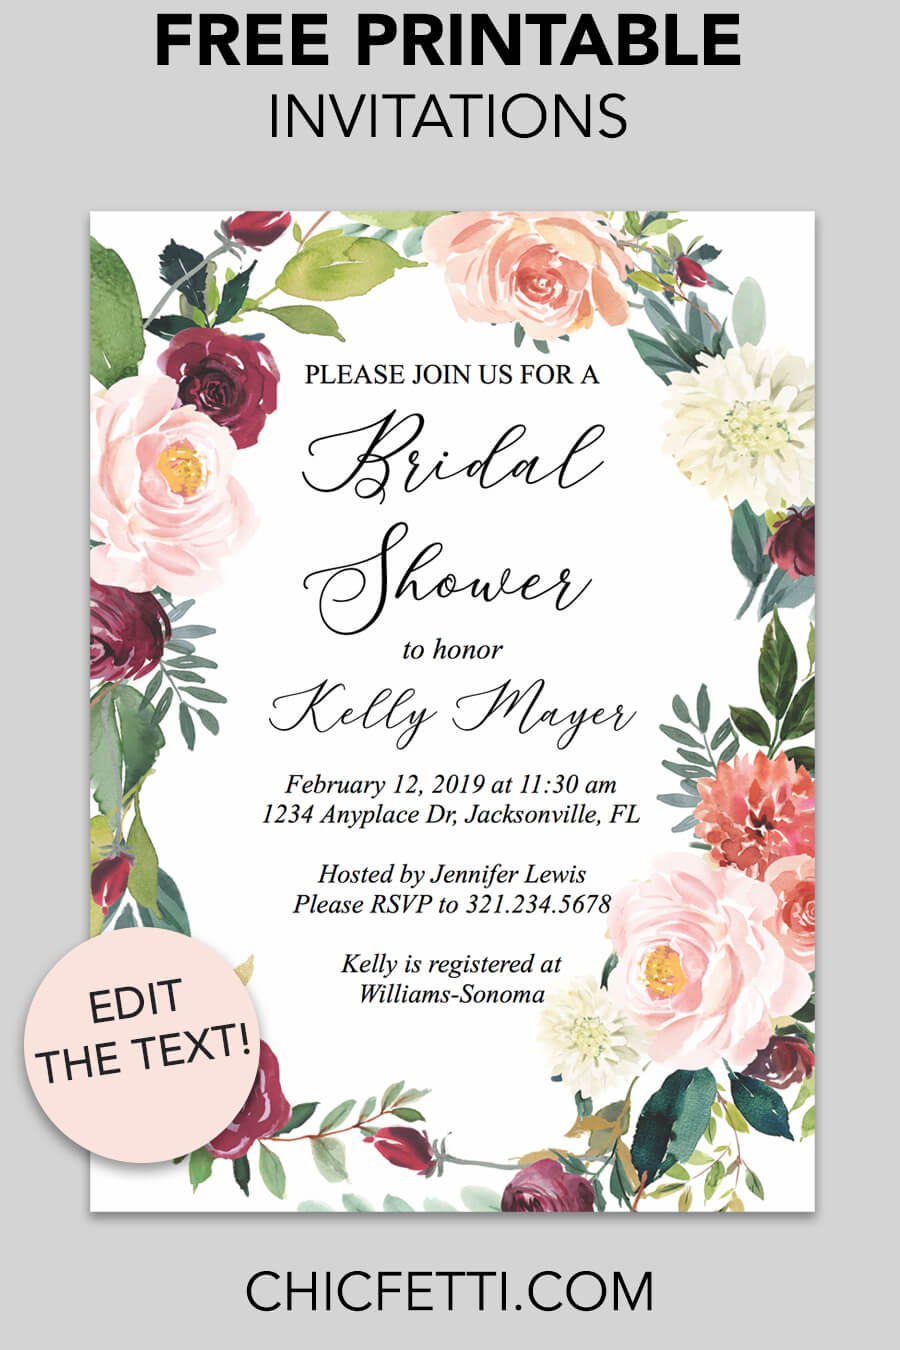 Free Printable Bridal Shower Invitation - download and print these free printable bridal shower invitation templates for the bridal shower you are having. #bridalshower #invitation #invitationtemplate #freeprintable #bridalshowerideas #printableinvitation #printable